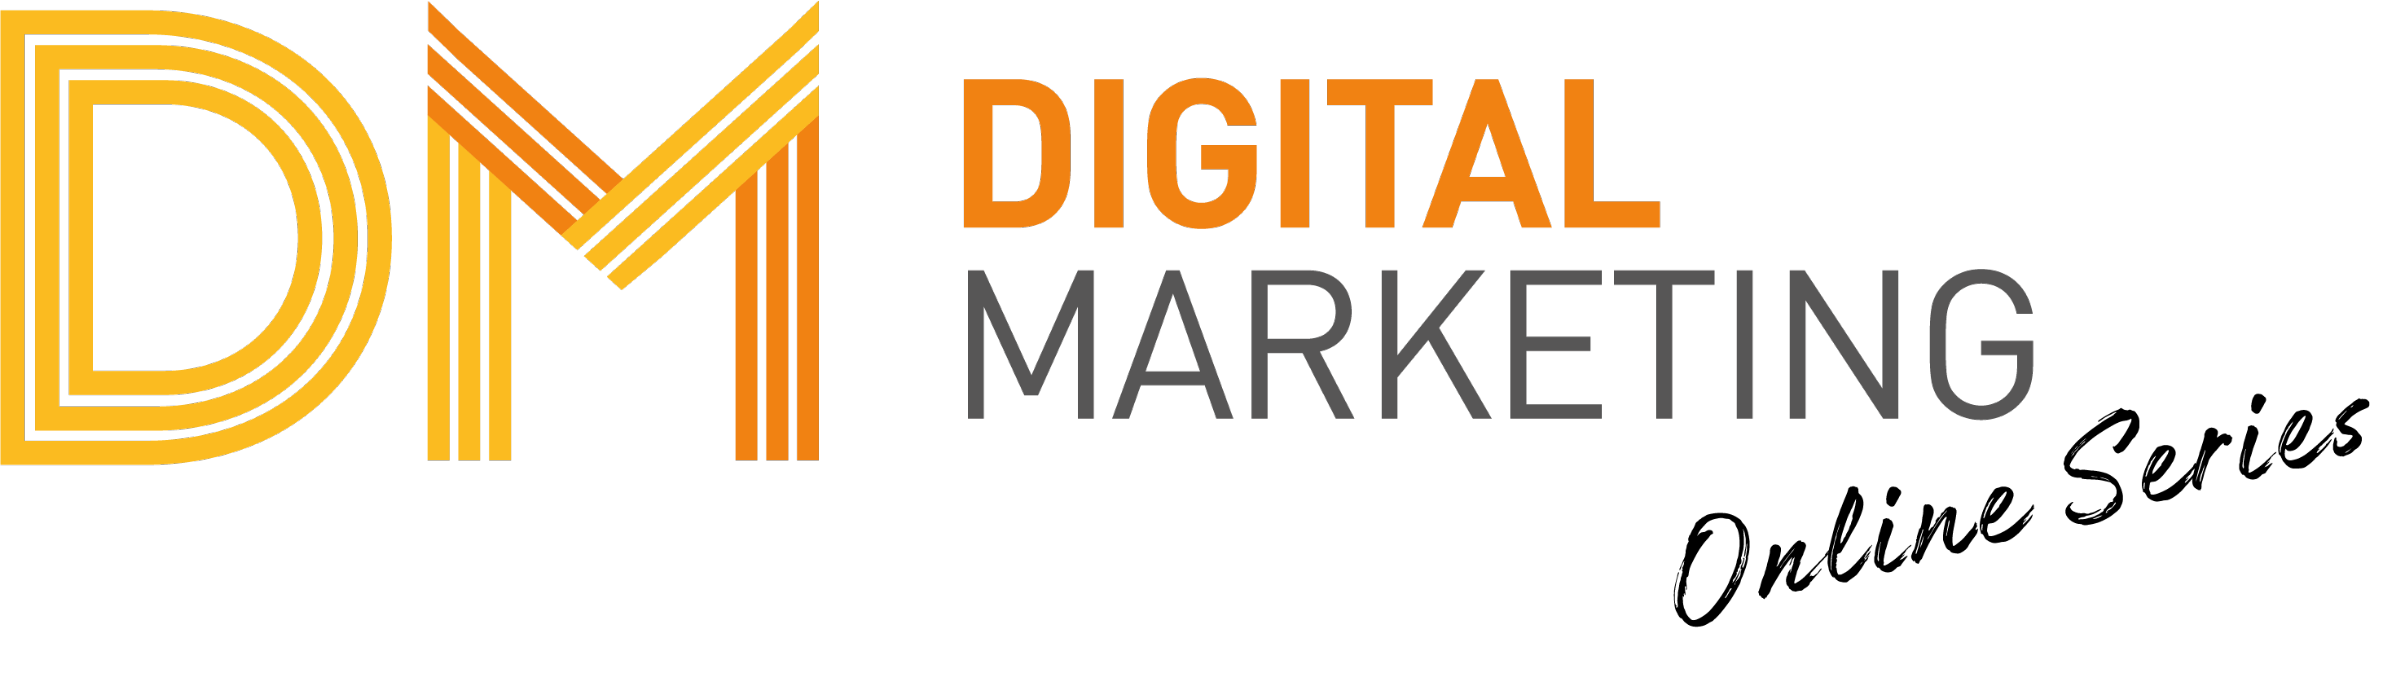 Digital Marketing Online Series